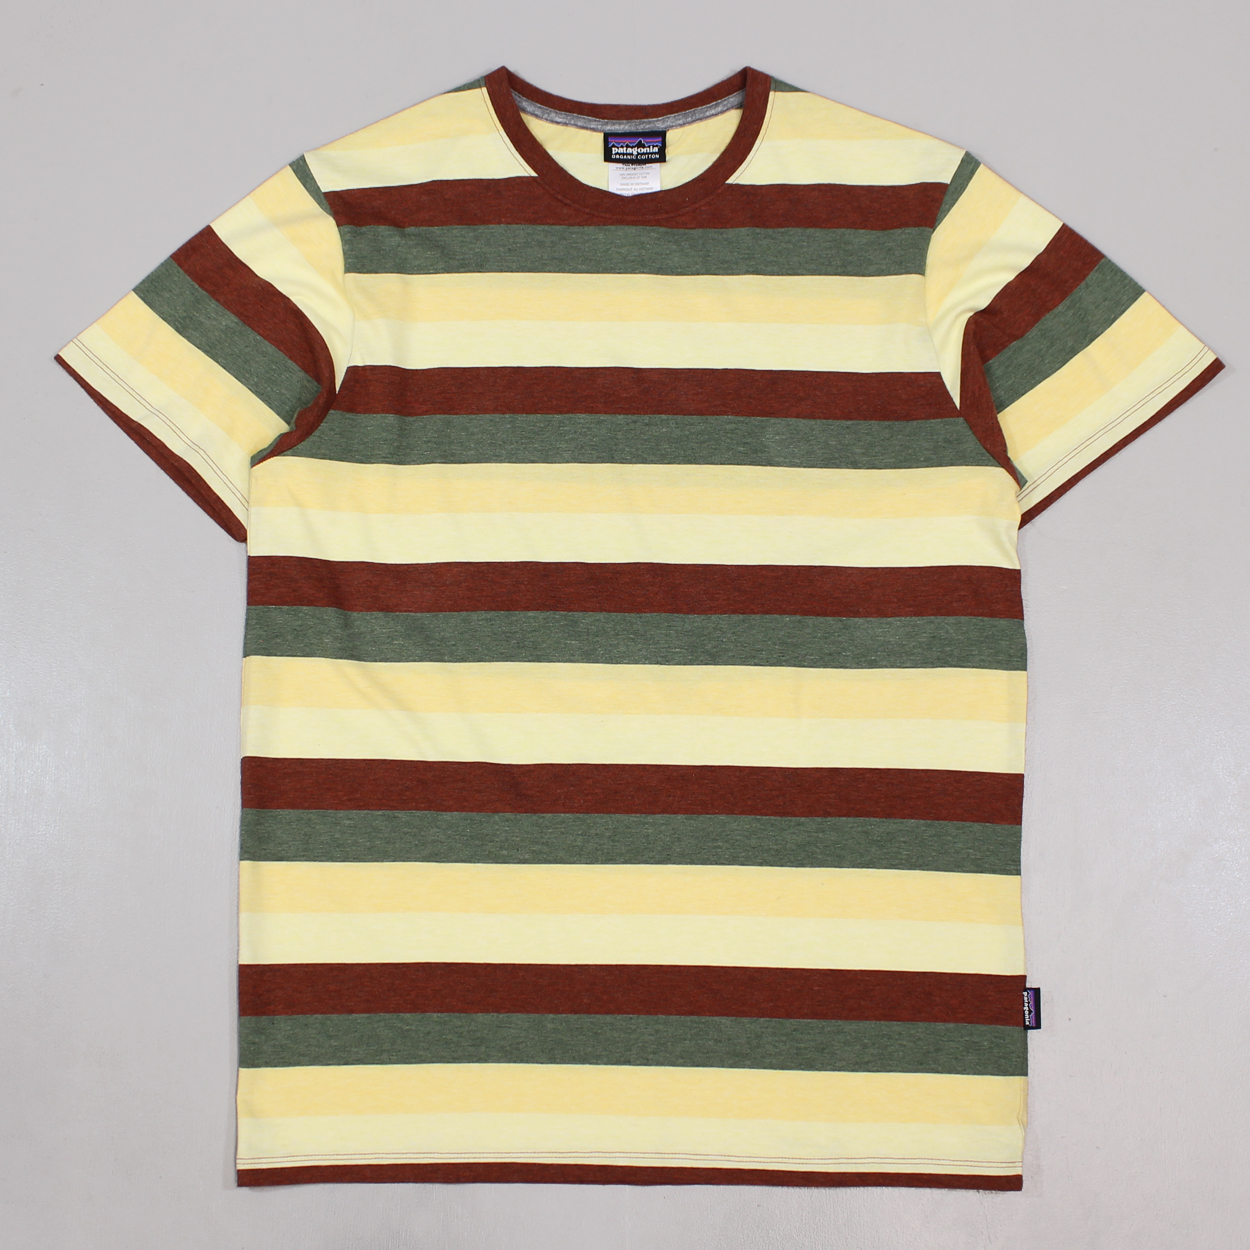 2deb858c Patagonia Mens Daily Tee T Shirt Rusted Iron Striped Pattern £26.25